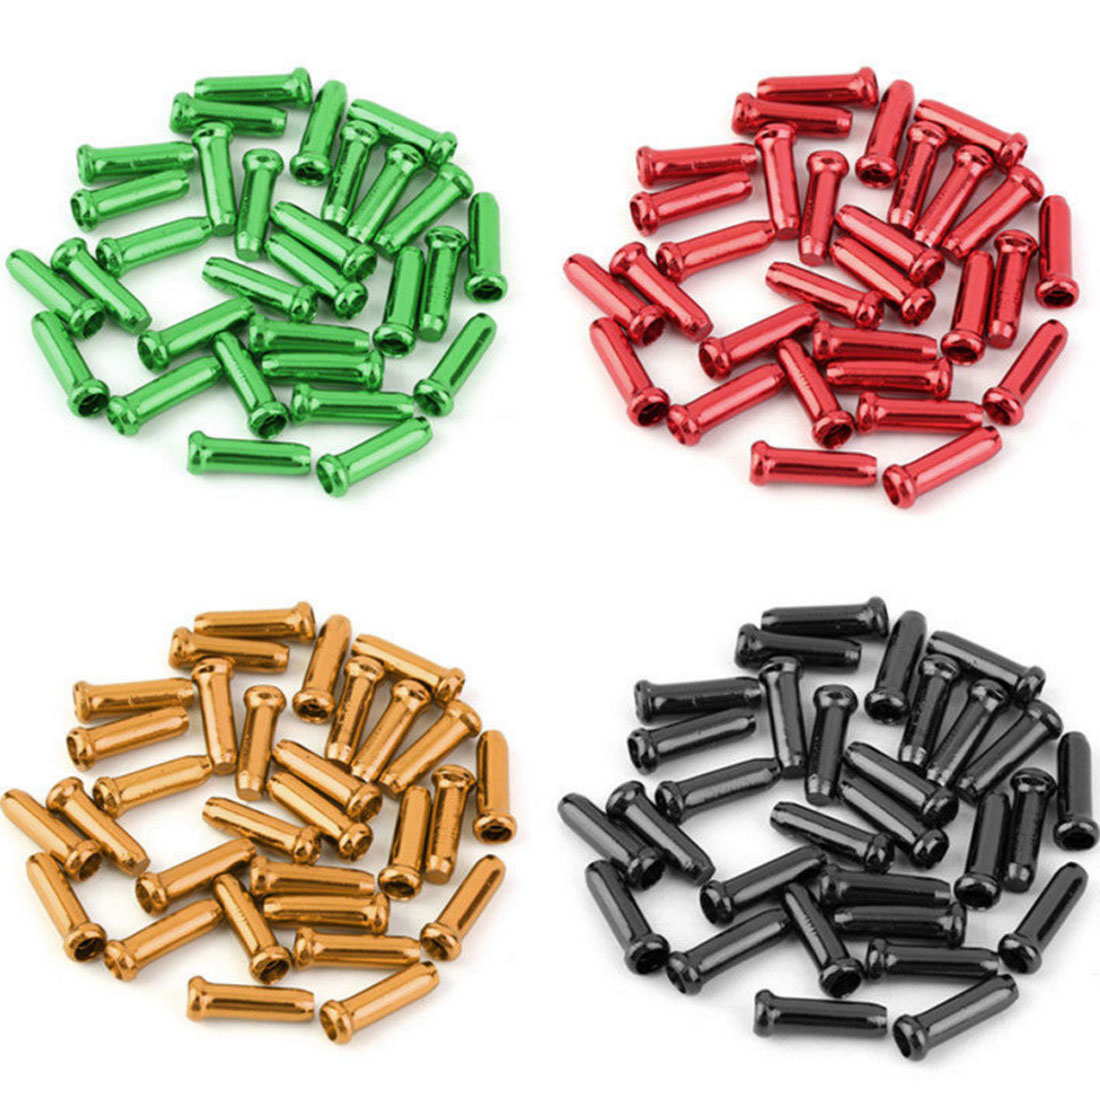 10 Pcs Aluminum Alloy Bike Bicycle Brake Cable Tips Crimps Bicycles Derailleur Shift End Caps Core